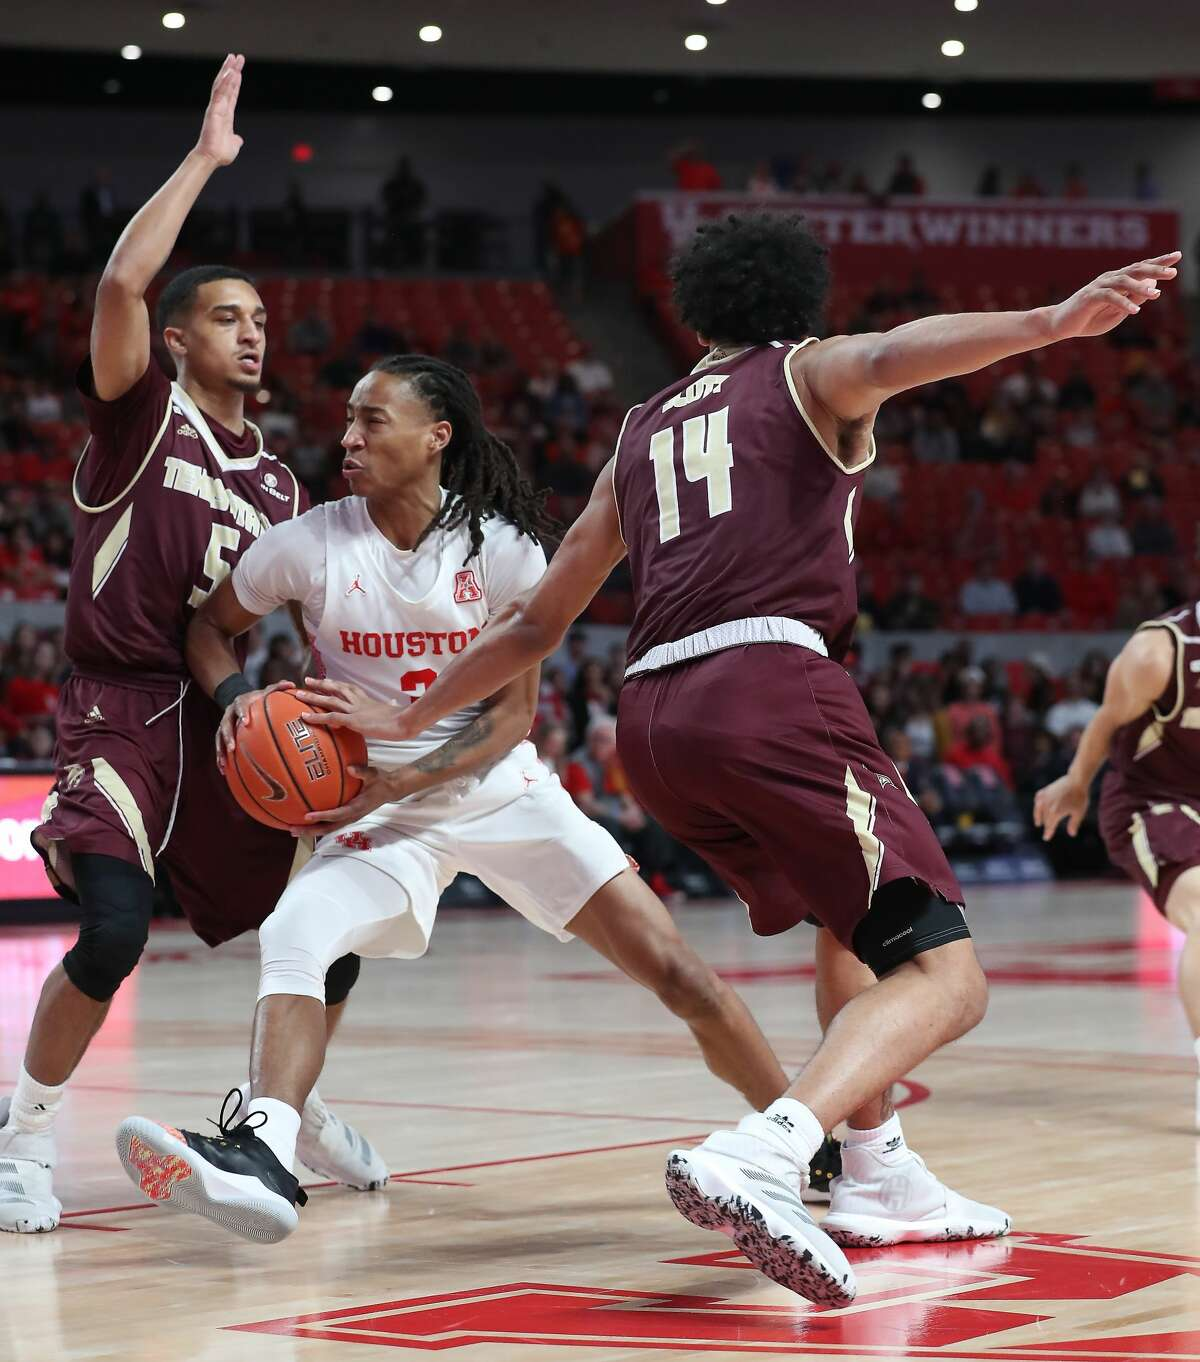 Houston Cougars guard Caleb Mills (2) drives pass Texas State Bobcats guard Marlin Davis (5) and forward Quentin Scott (14) during the first half of an NCAA basketball game at Fertitta Center Wednesday, Dec. 4, 2019, in Houston.